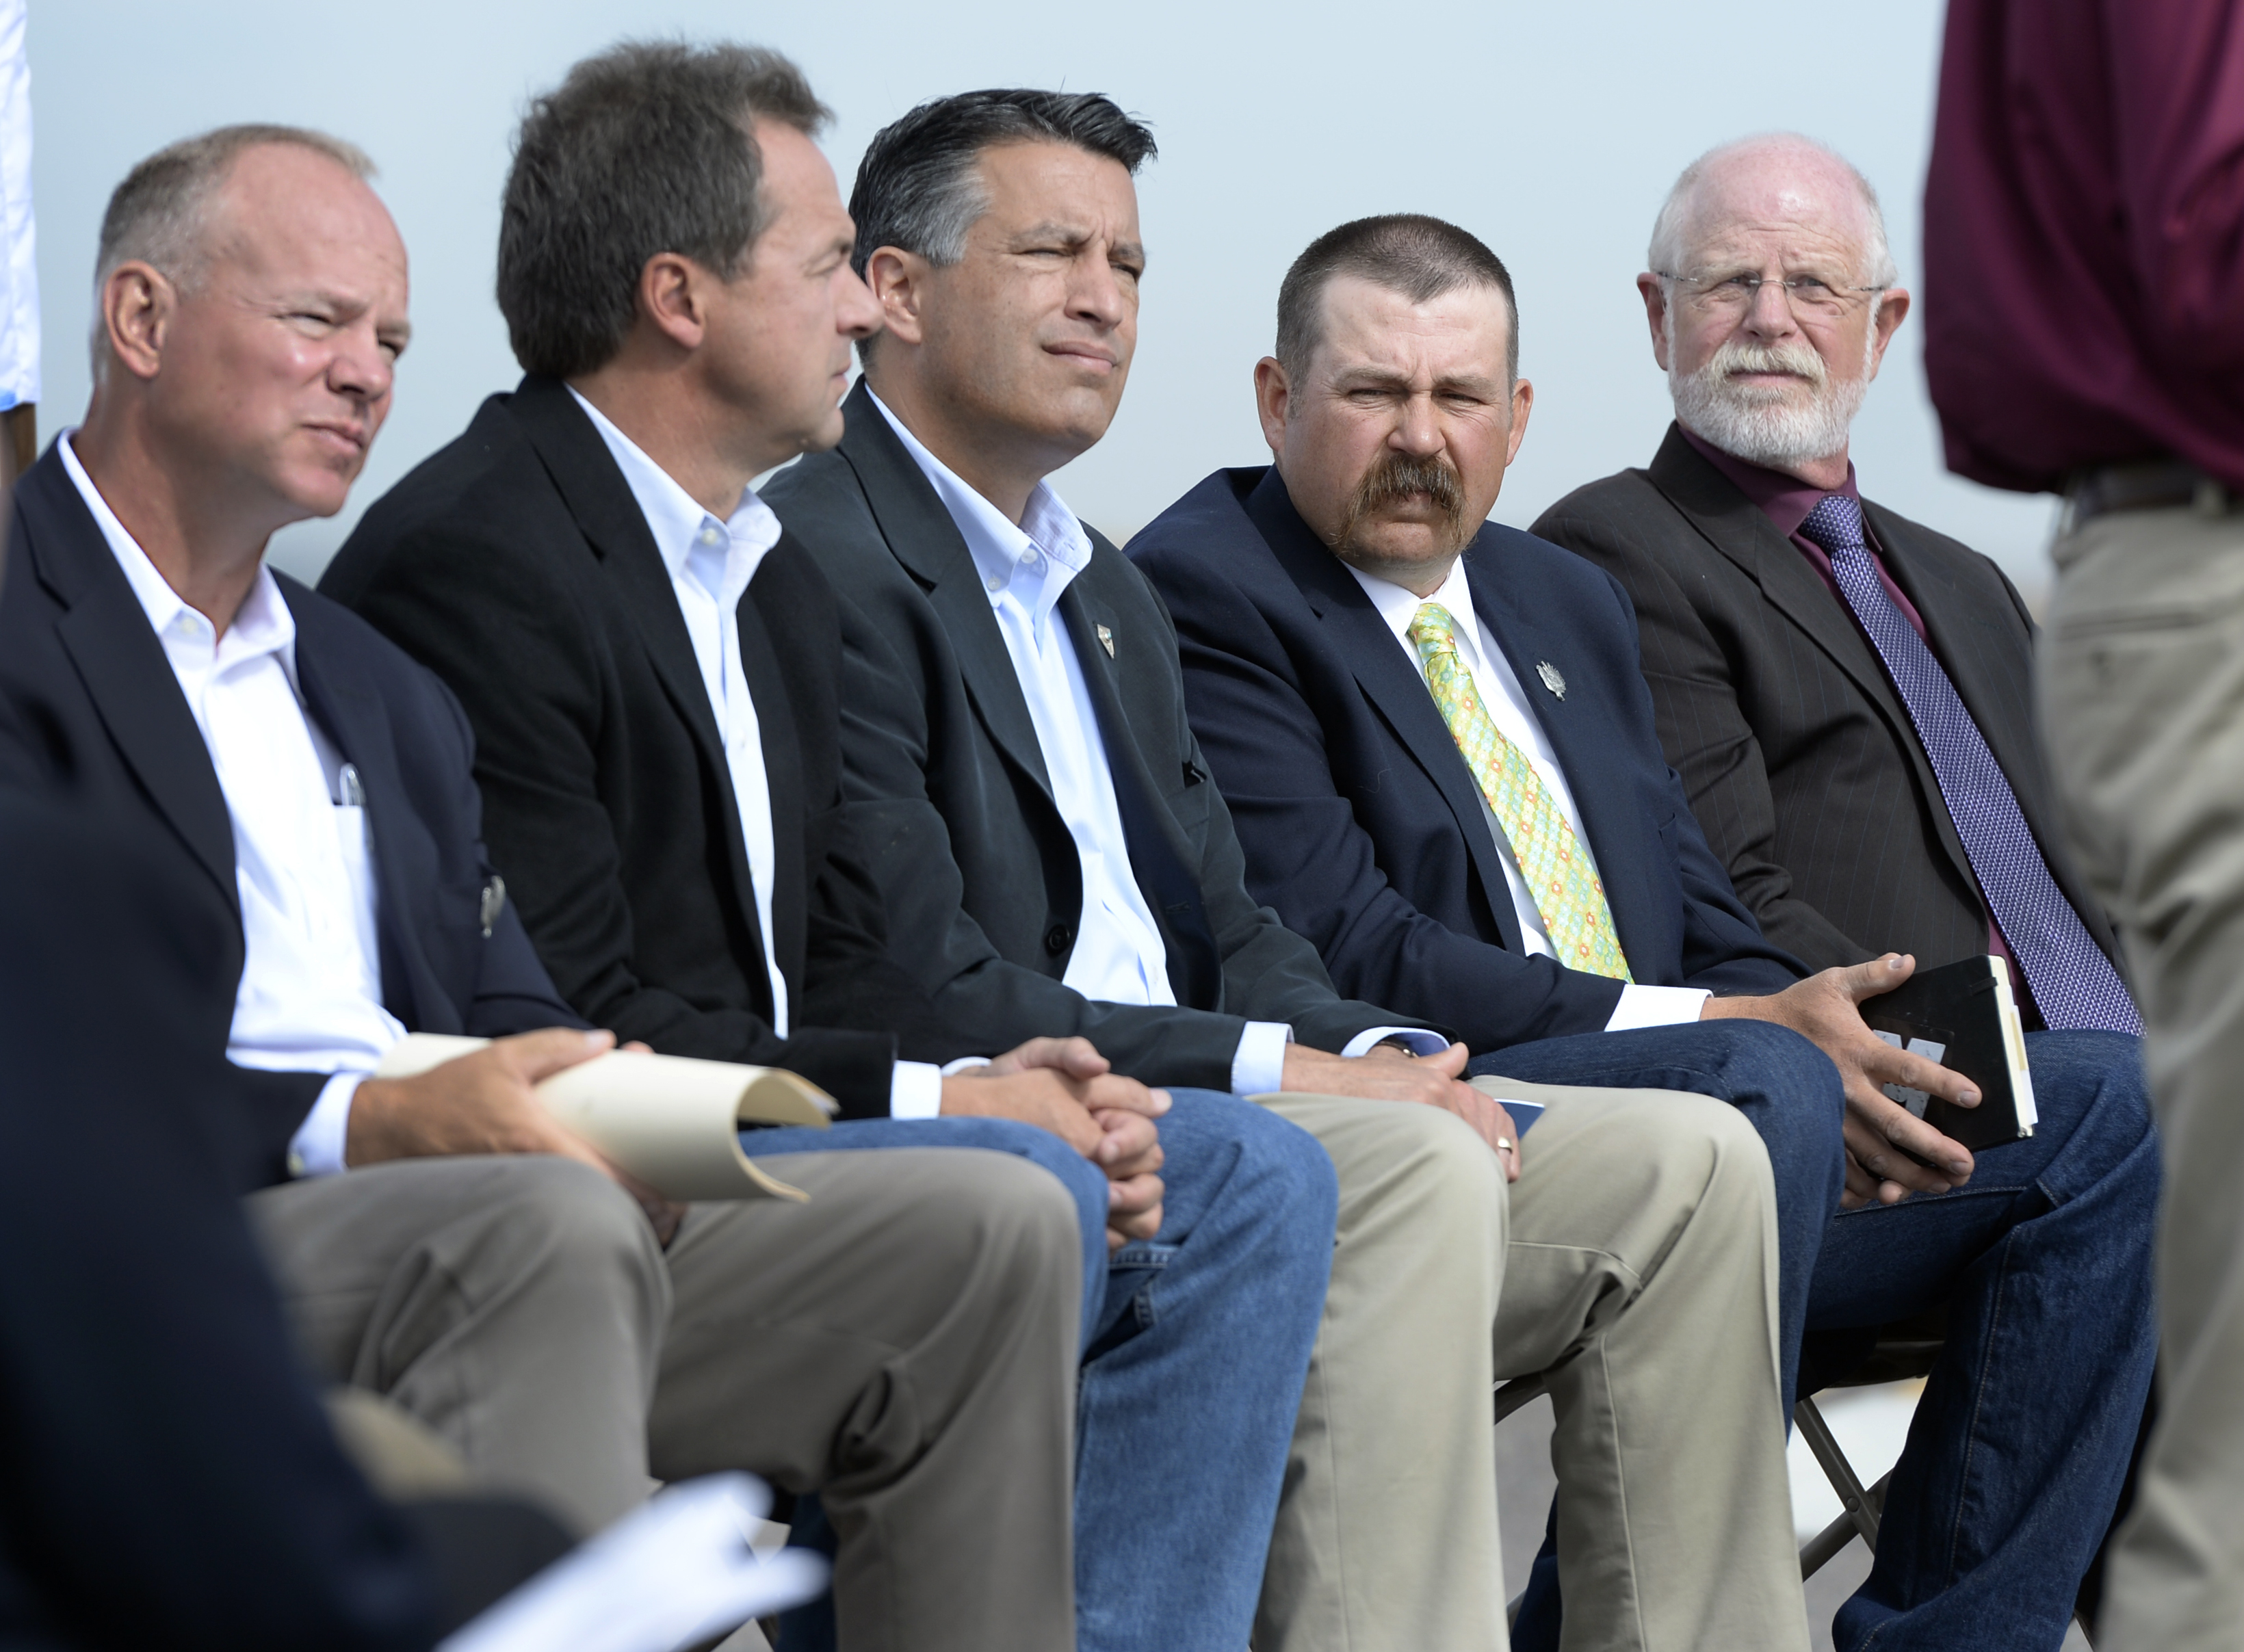 U.S. Secretary of the Interior Sally Jewell joins western governors and other officials at the Rocky Mountain Arsenal National Wildlife Refuge in Denver.